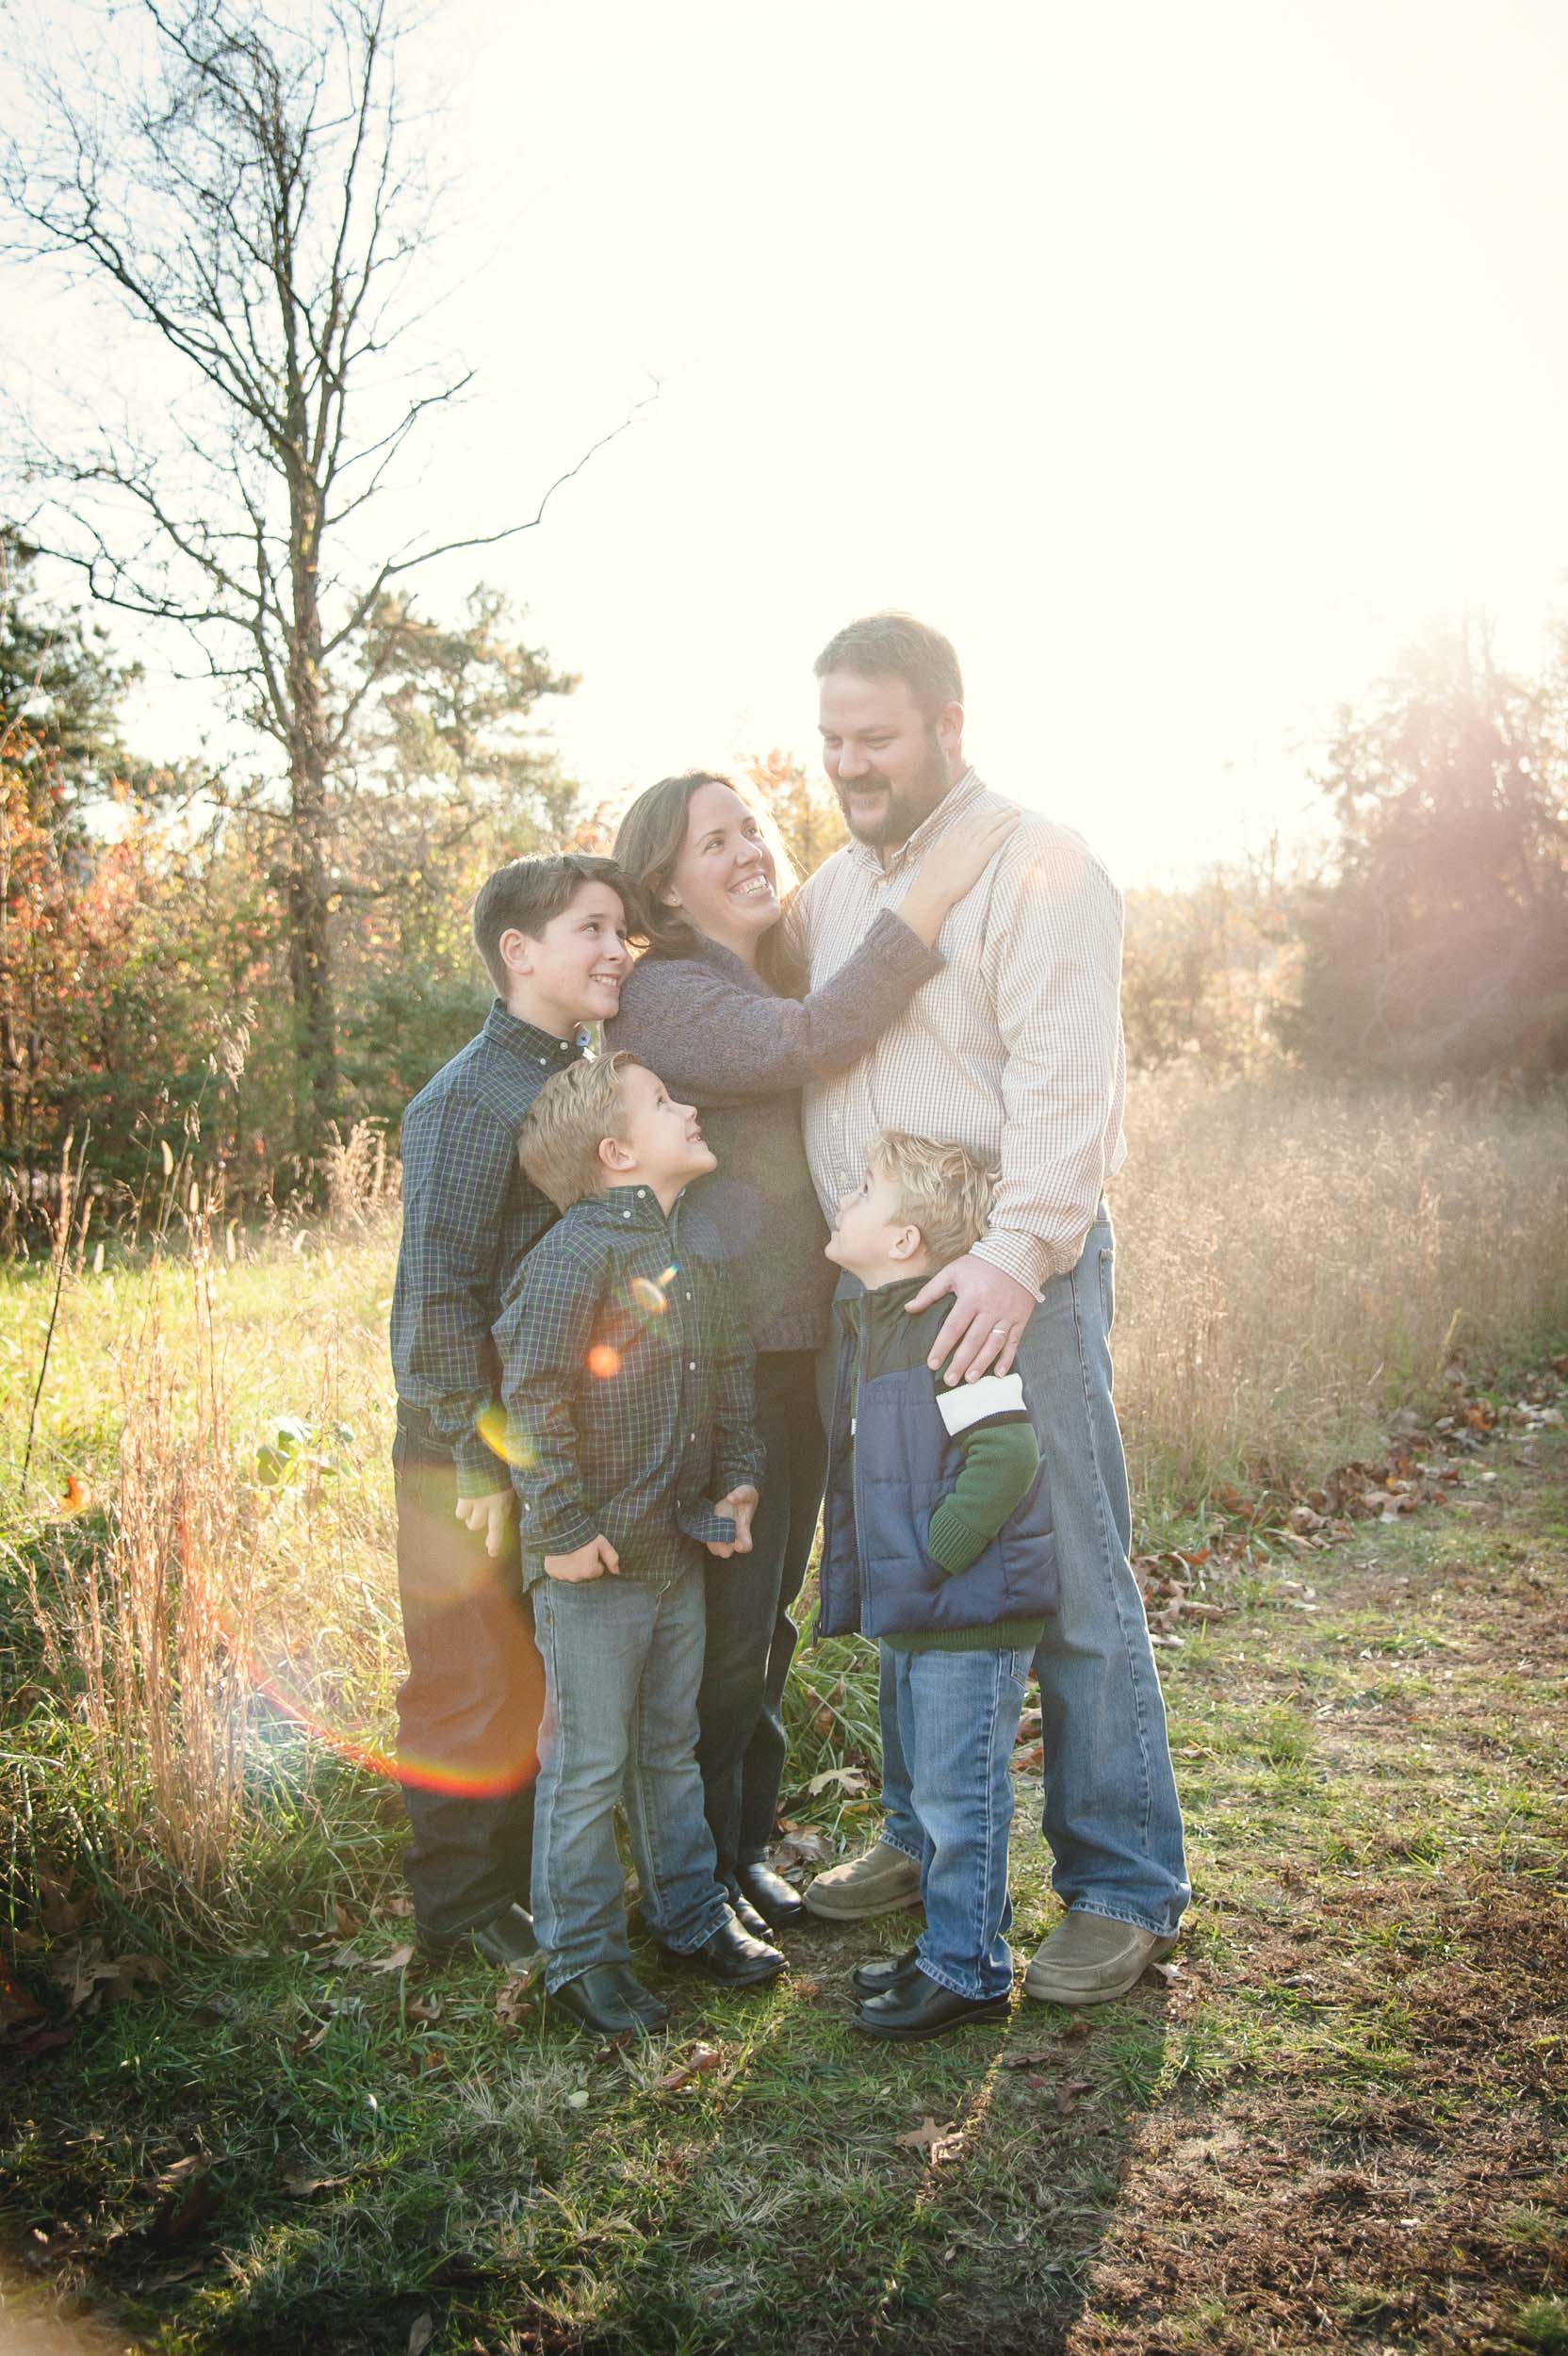 Bohlman_Fall_Family_Photo_Session_Maryland_Eastern-Shore_Adkins_Arboretum(2of11).jpg